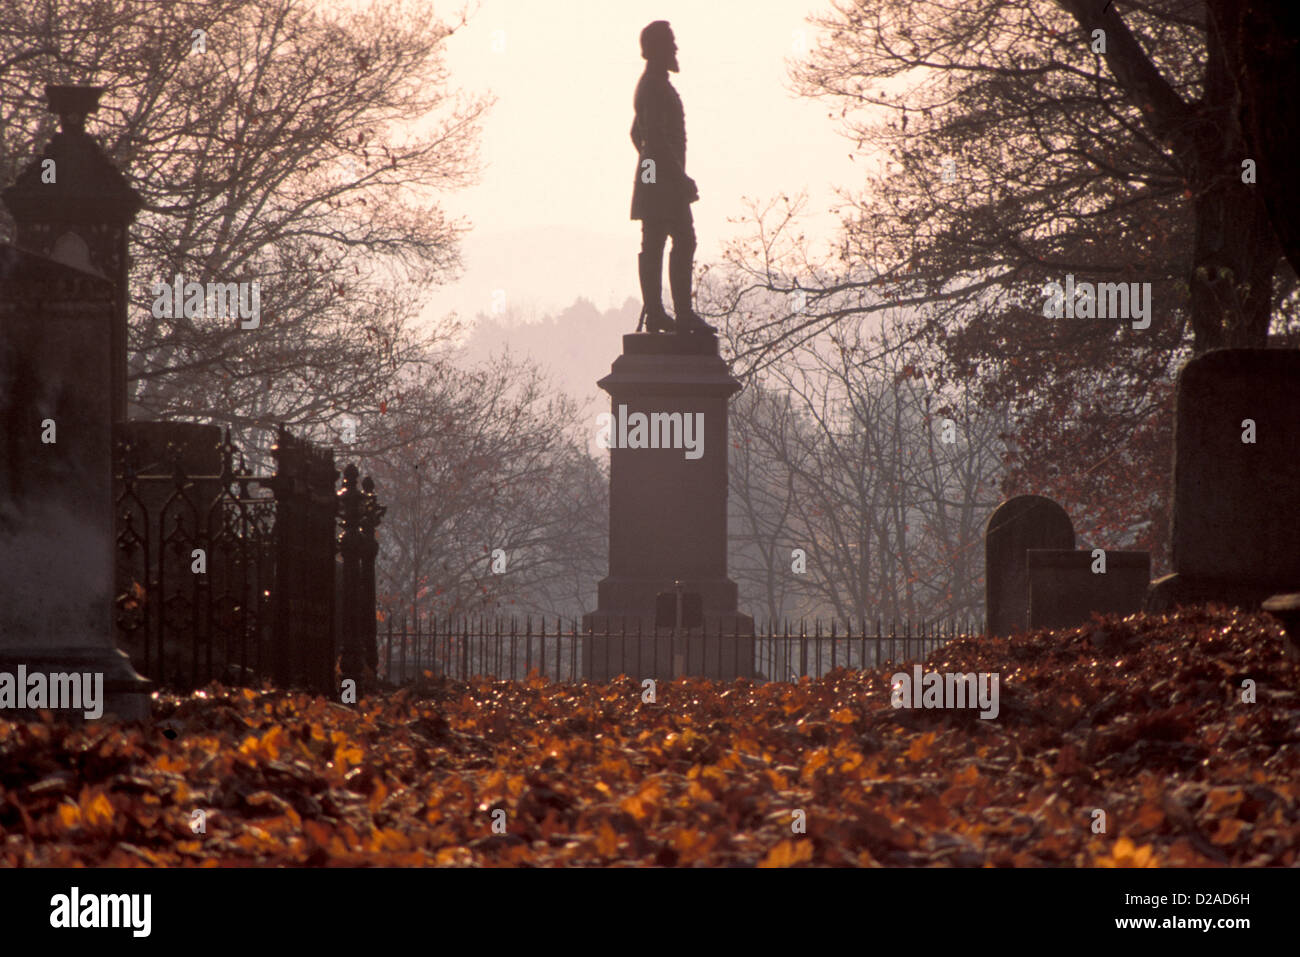 Virginia, Lexington. Stonewall Jackson Statue In Memorial Cemetery. - Stock Image